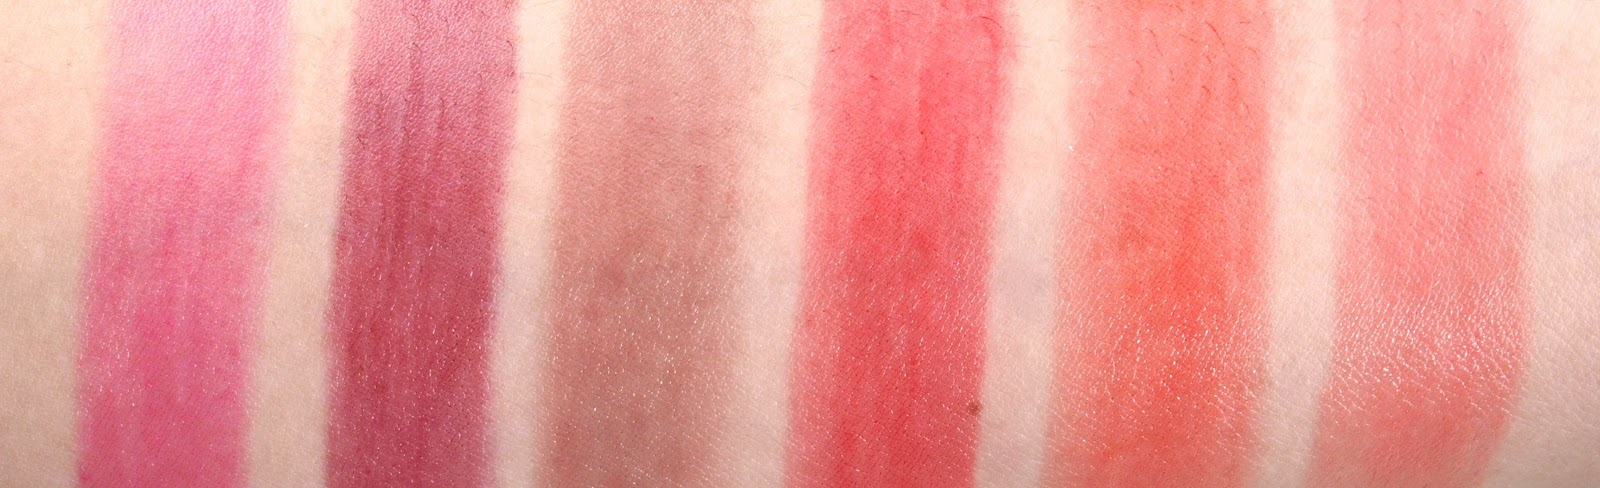 Yves Rocher Sheer Botanical Lipsticks swatches